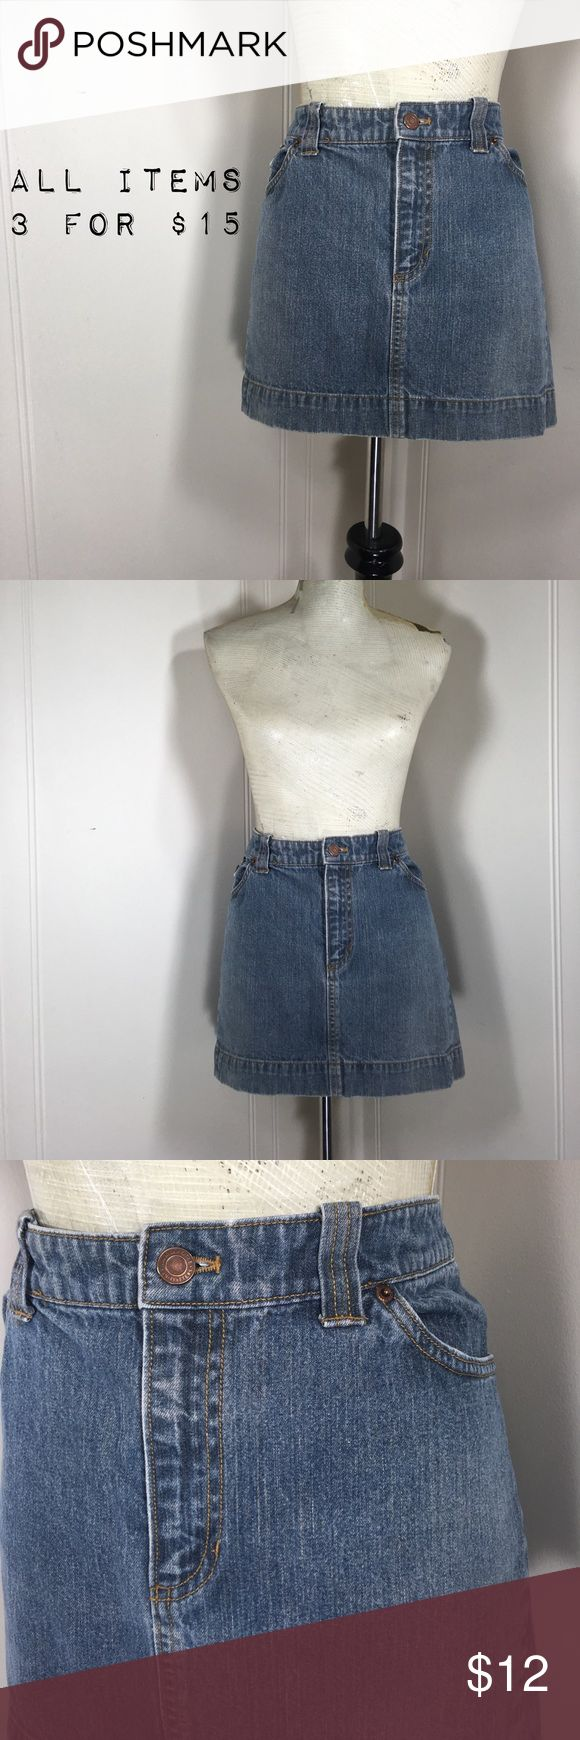 "American Eagle Denim Jean Mini Skirt Preowned condition. No stains or holes. Normal wash and wear.           NOTE: has been pinned to dressform   Tag Size: women's 12 Waist Flat: 17"" Hips: 20"" Length: 13"".   Fabric has no stretch.                         Please go off measurements and NOT Tag Size. Sizes differ from company to company. I 💜questions! Please ask any and all questions before purchasing.   Thanks! ~Rag Time Machine.~ American Eagle Outfitters Skirts Mini"